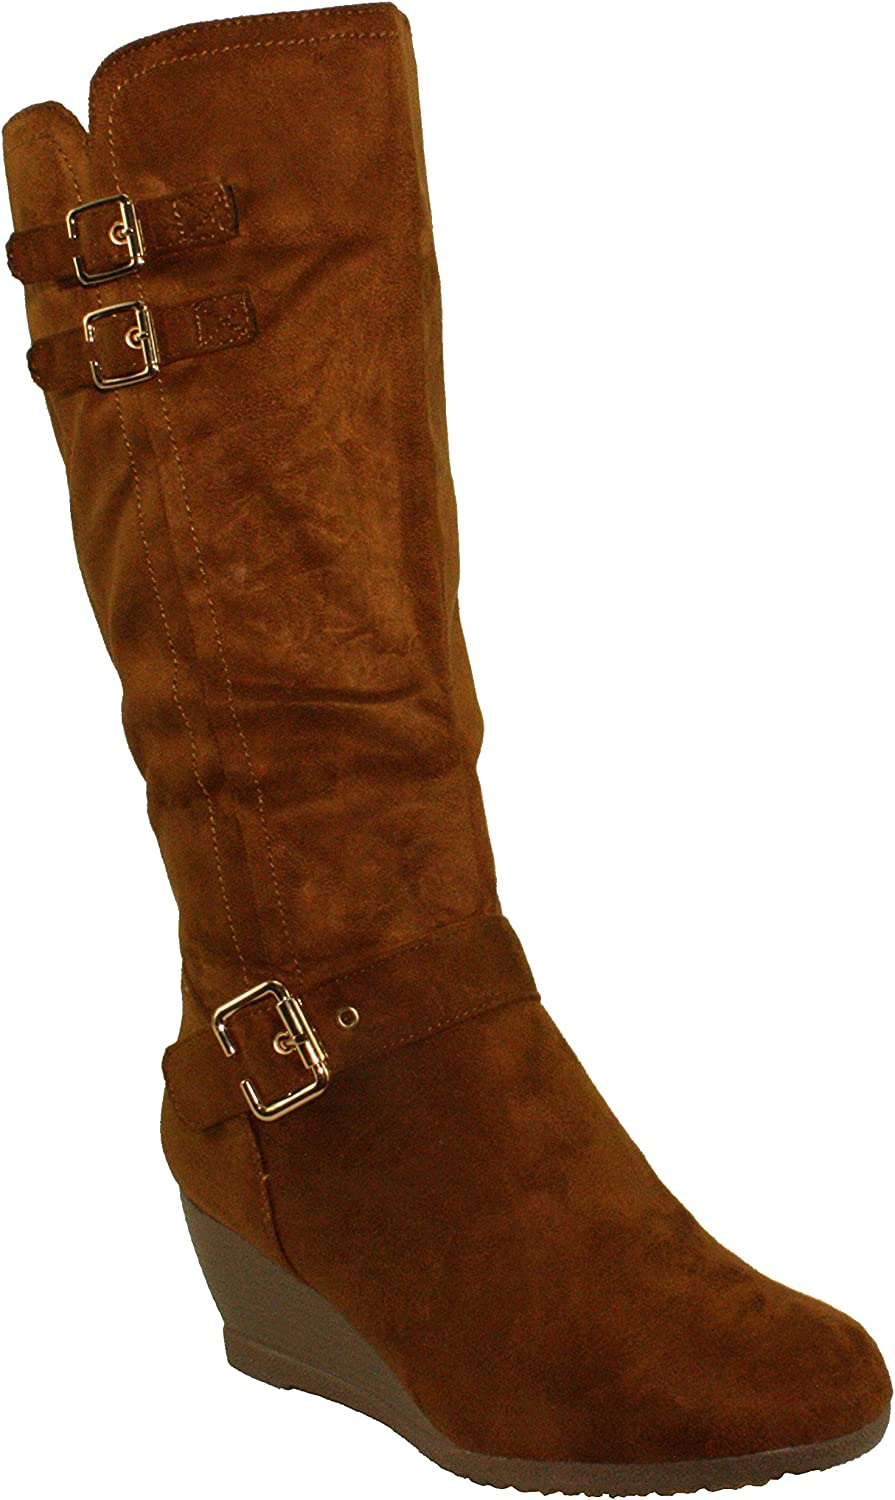 DBDK Women's Monicay-2 Faux Suede Round Toe Buckled Wedge Heel Mid-Calf Boots